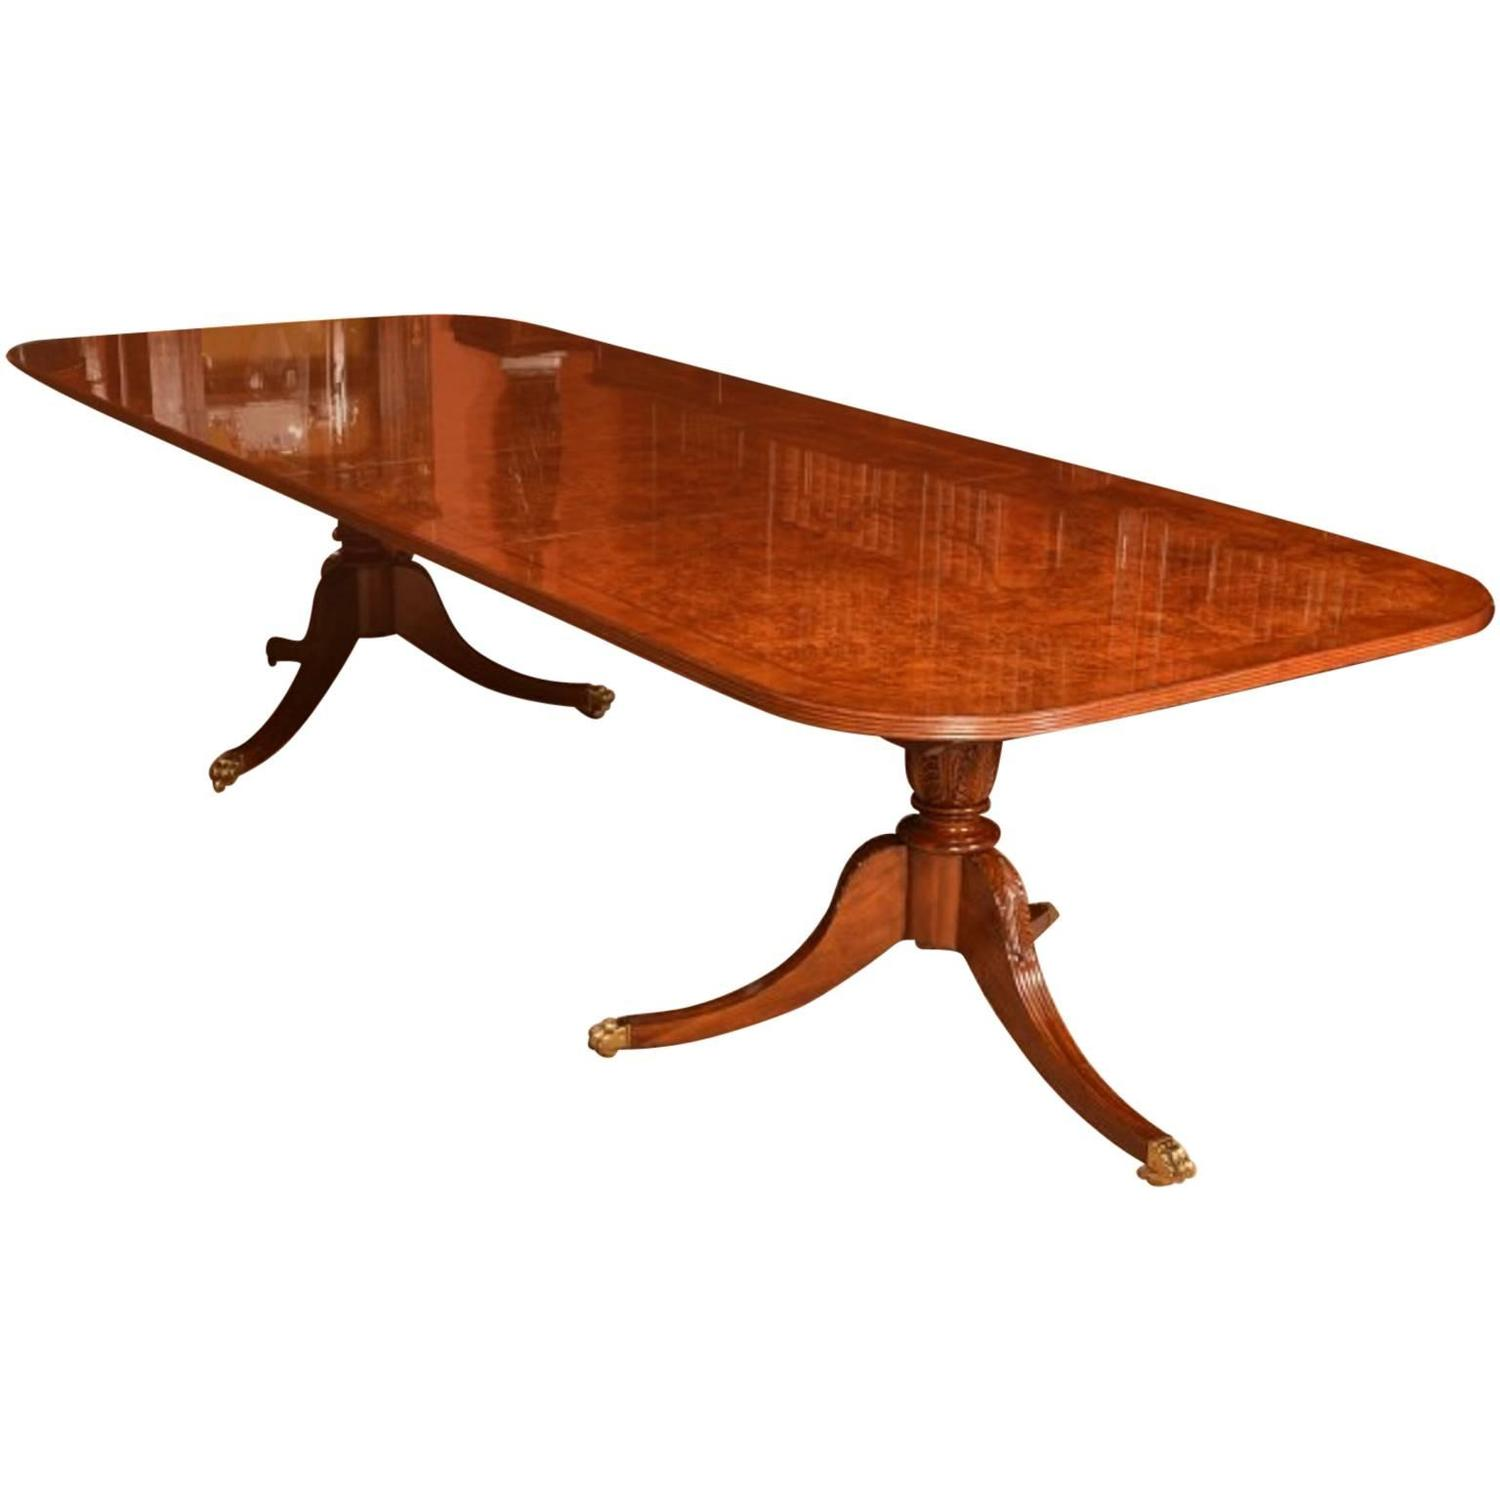 Burr walnut regency style twin pillar dining table for for Pillar dining table